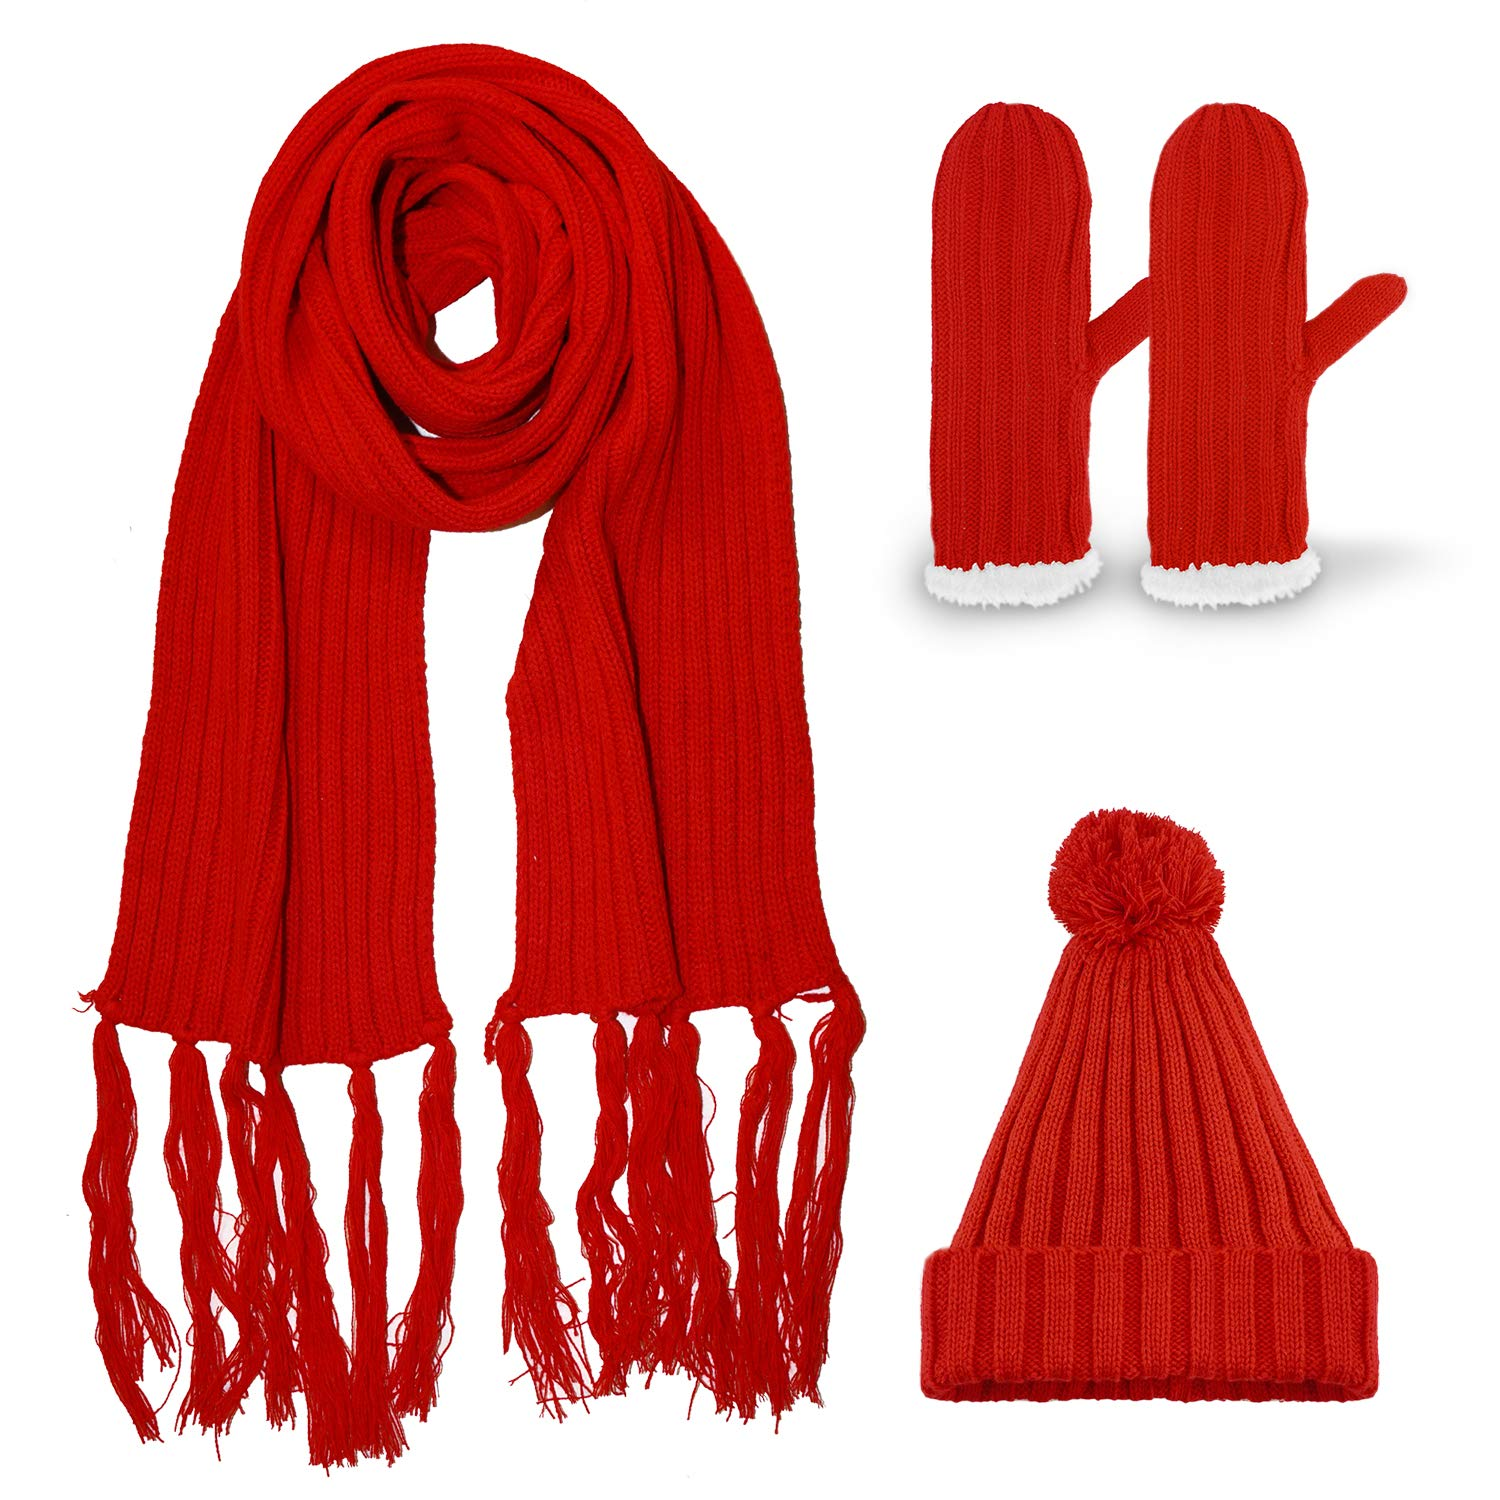 3-in-1, Set of Scarf, hat and Gloves, for Women and Girls, Split Cable Stitch Knitted, with Bobble (red Set 2) Gkmamrg